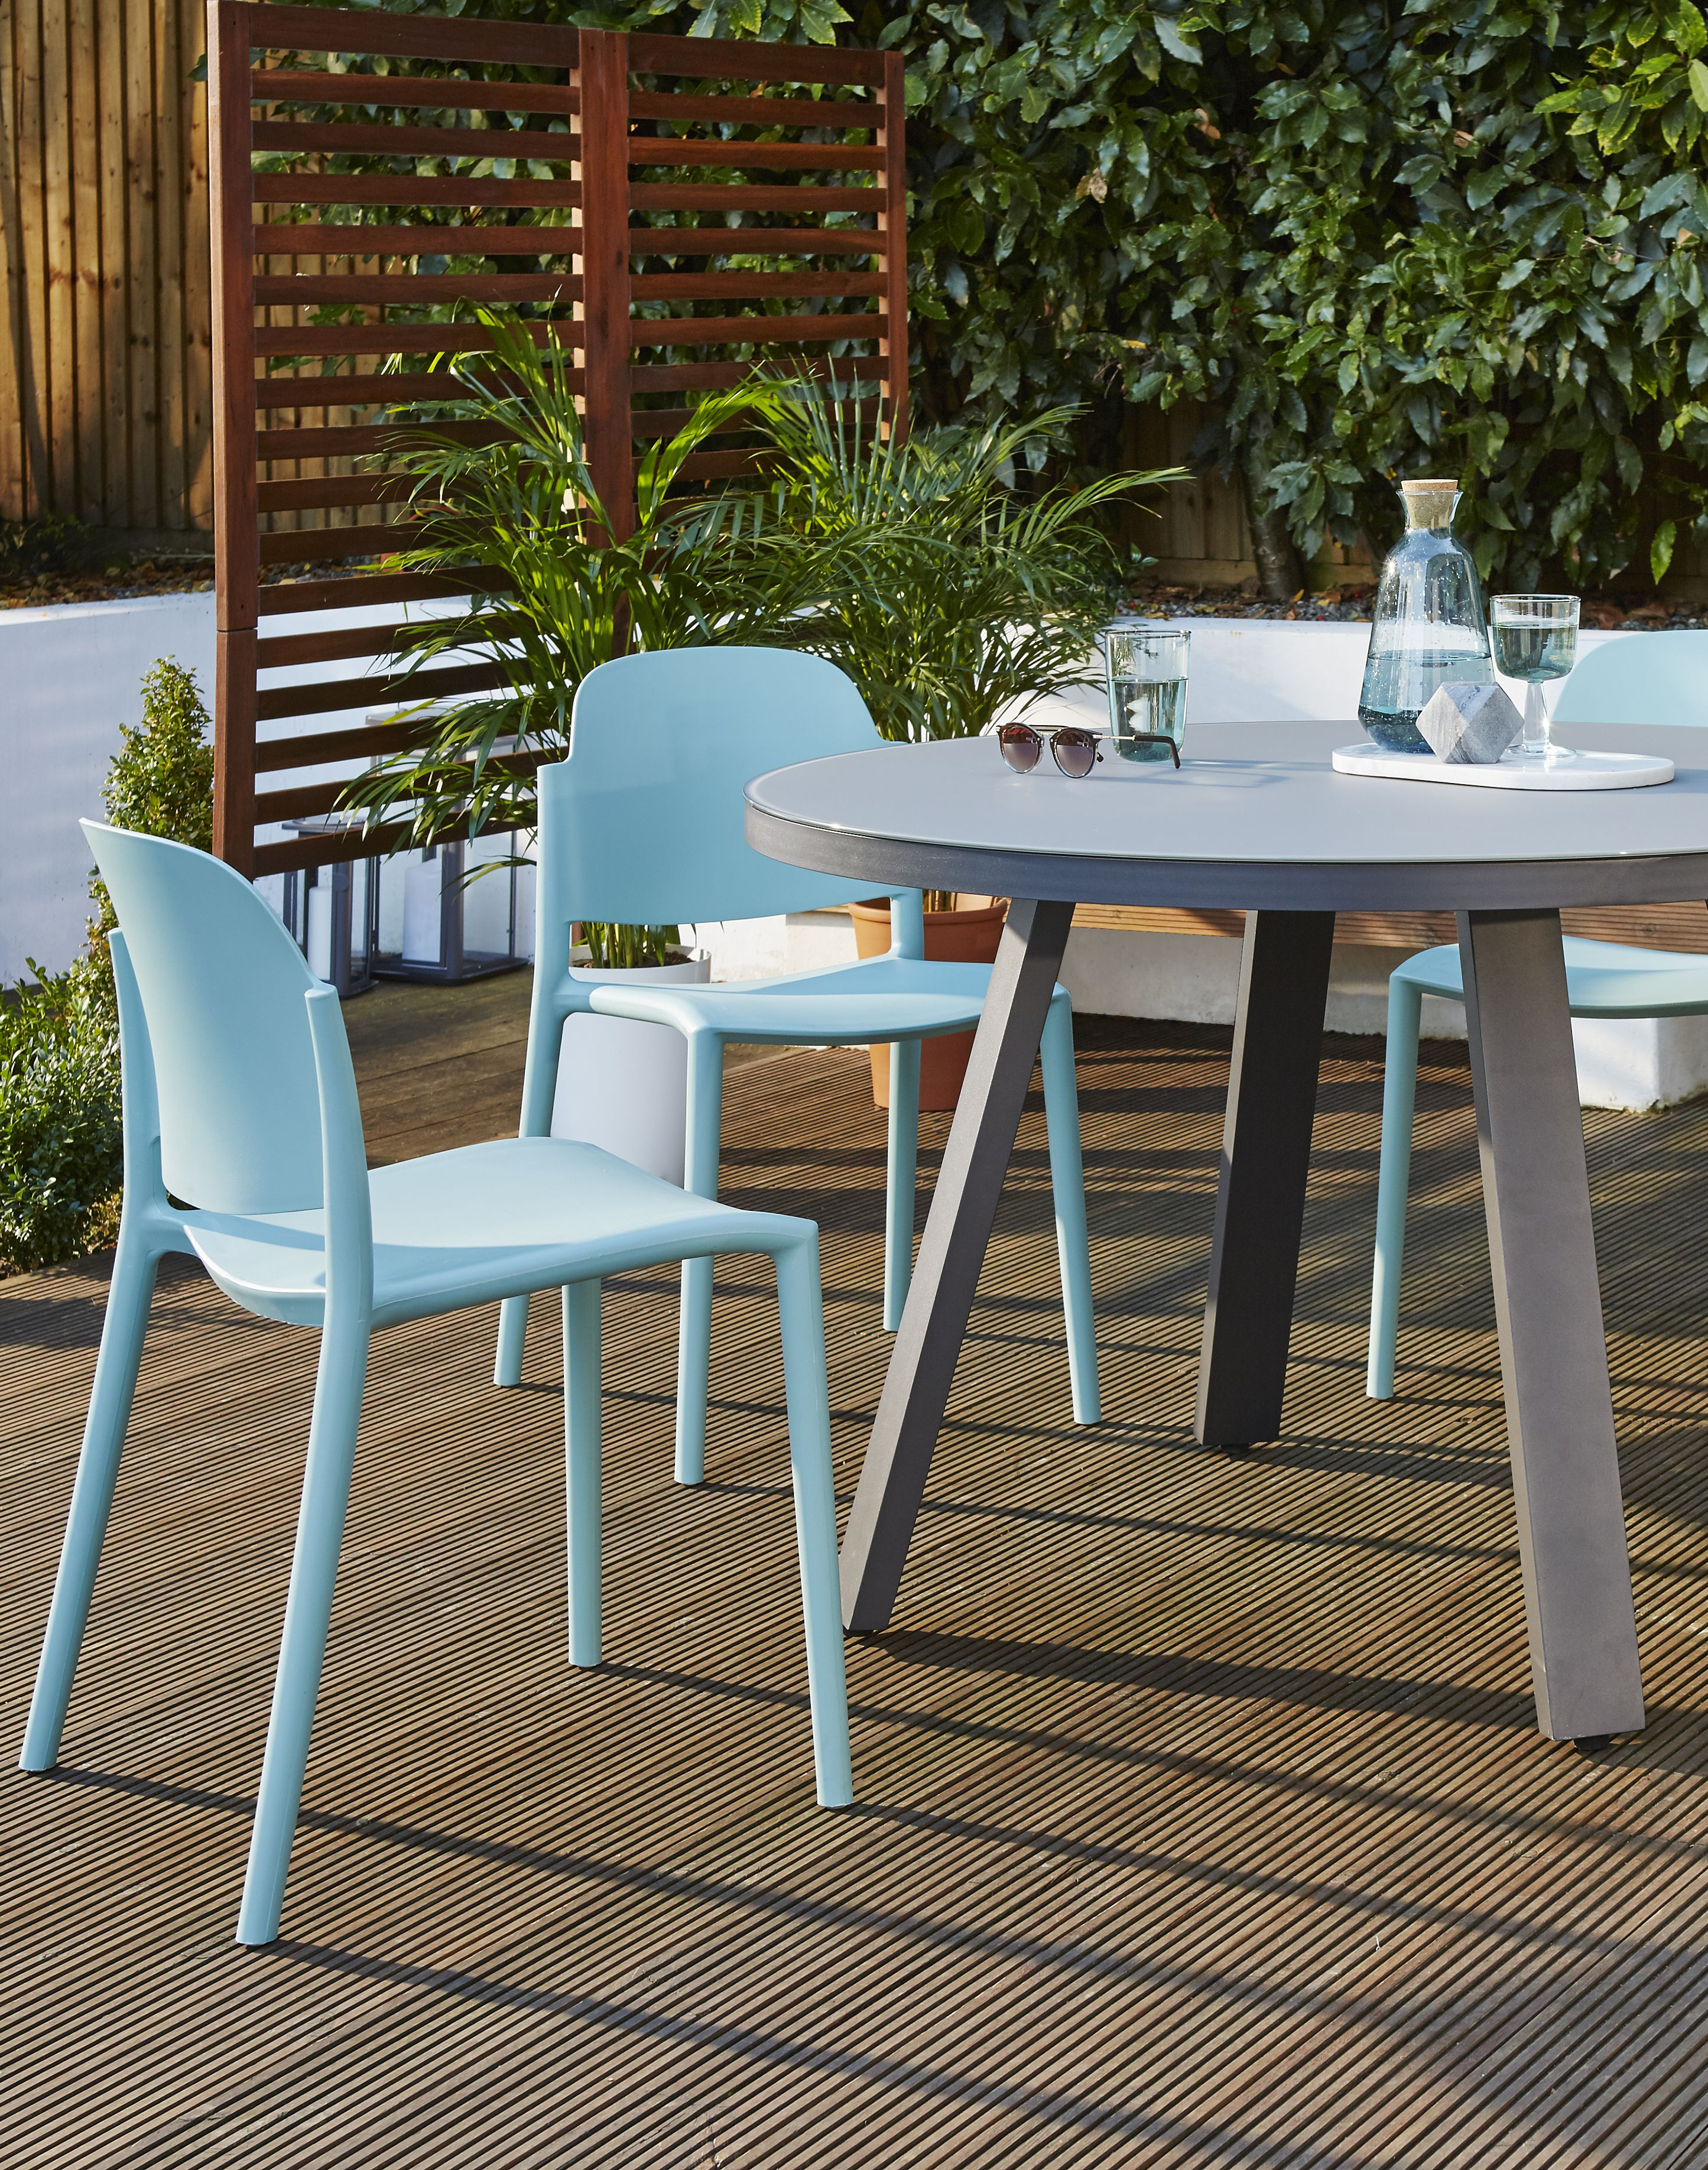 Prime Koko Round Dining Table And Lola Dining Chair Set Danetti Home Interior And Landscaping Ferensignezvosmurscom